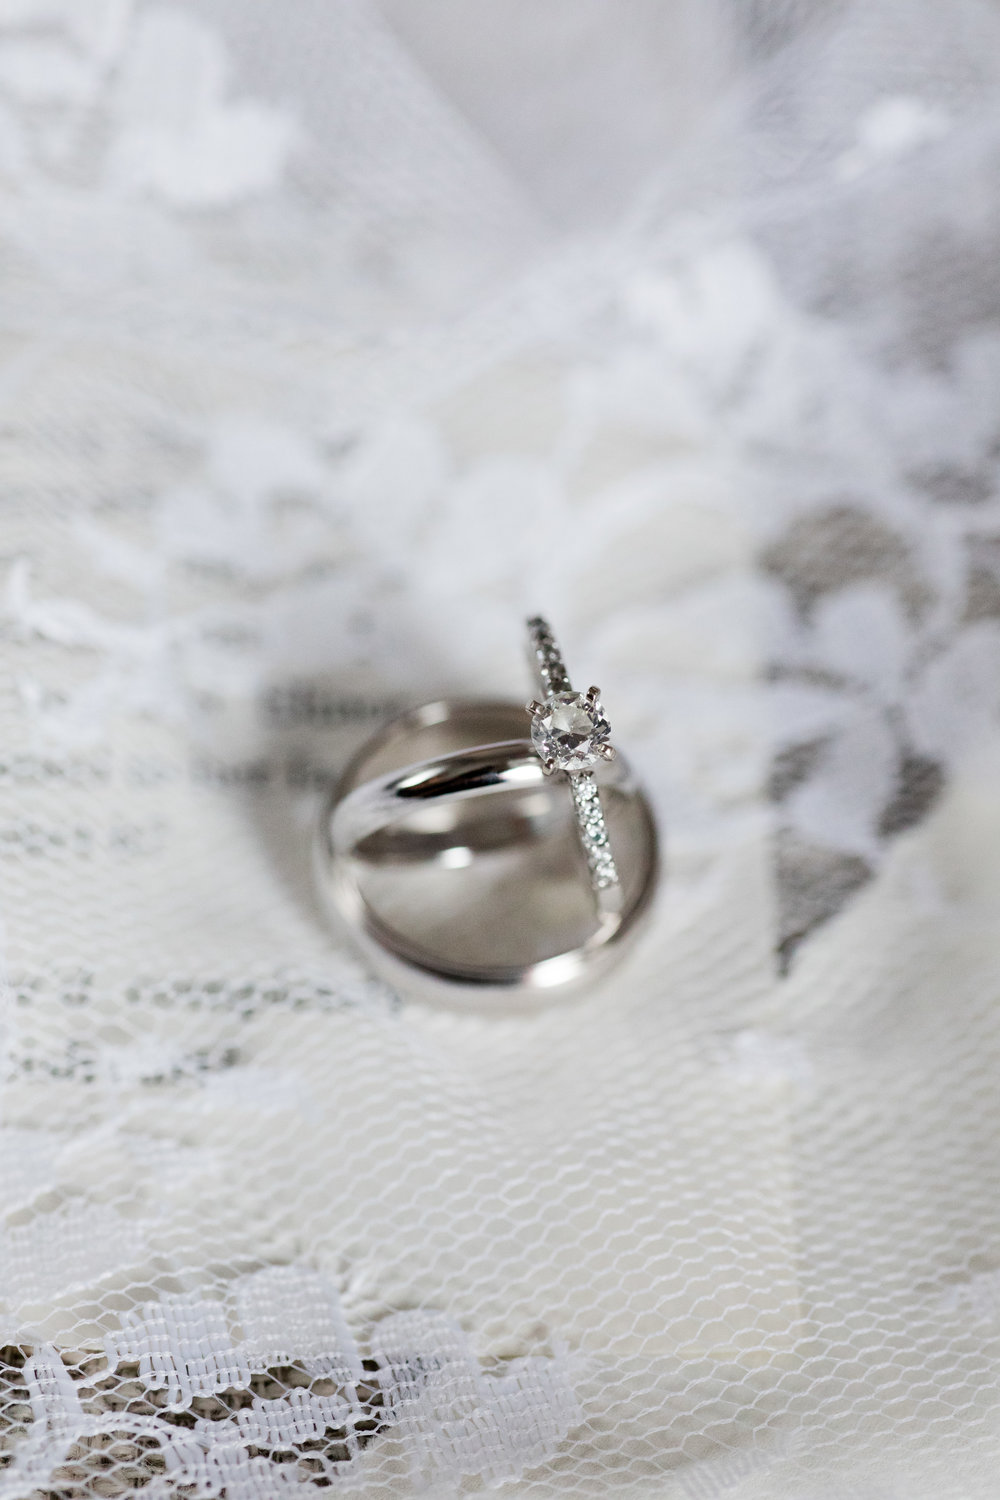 wedding bands and heirloom engagement ring from ford jewelers atop lace photographed by jaye kogut